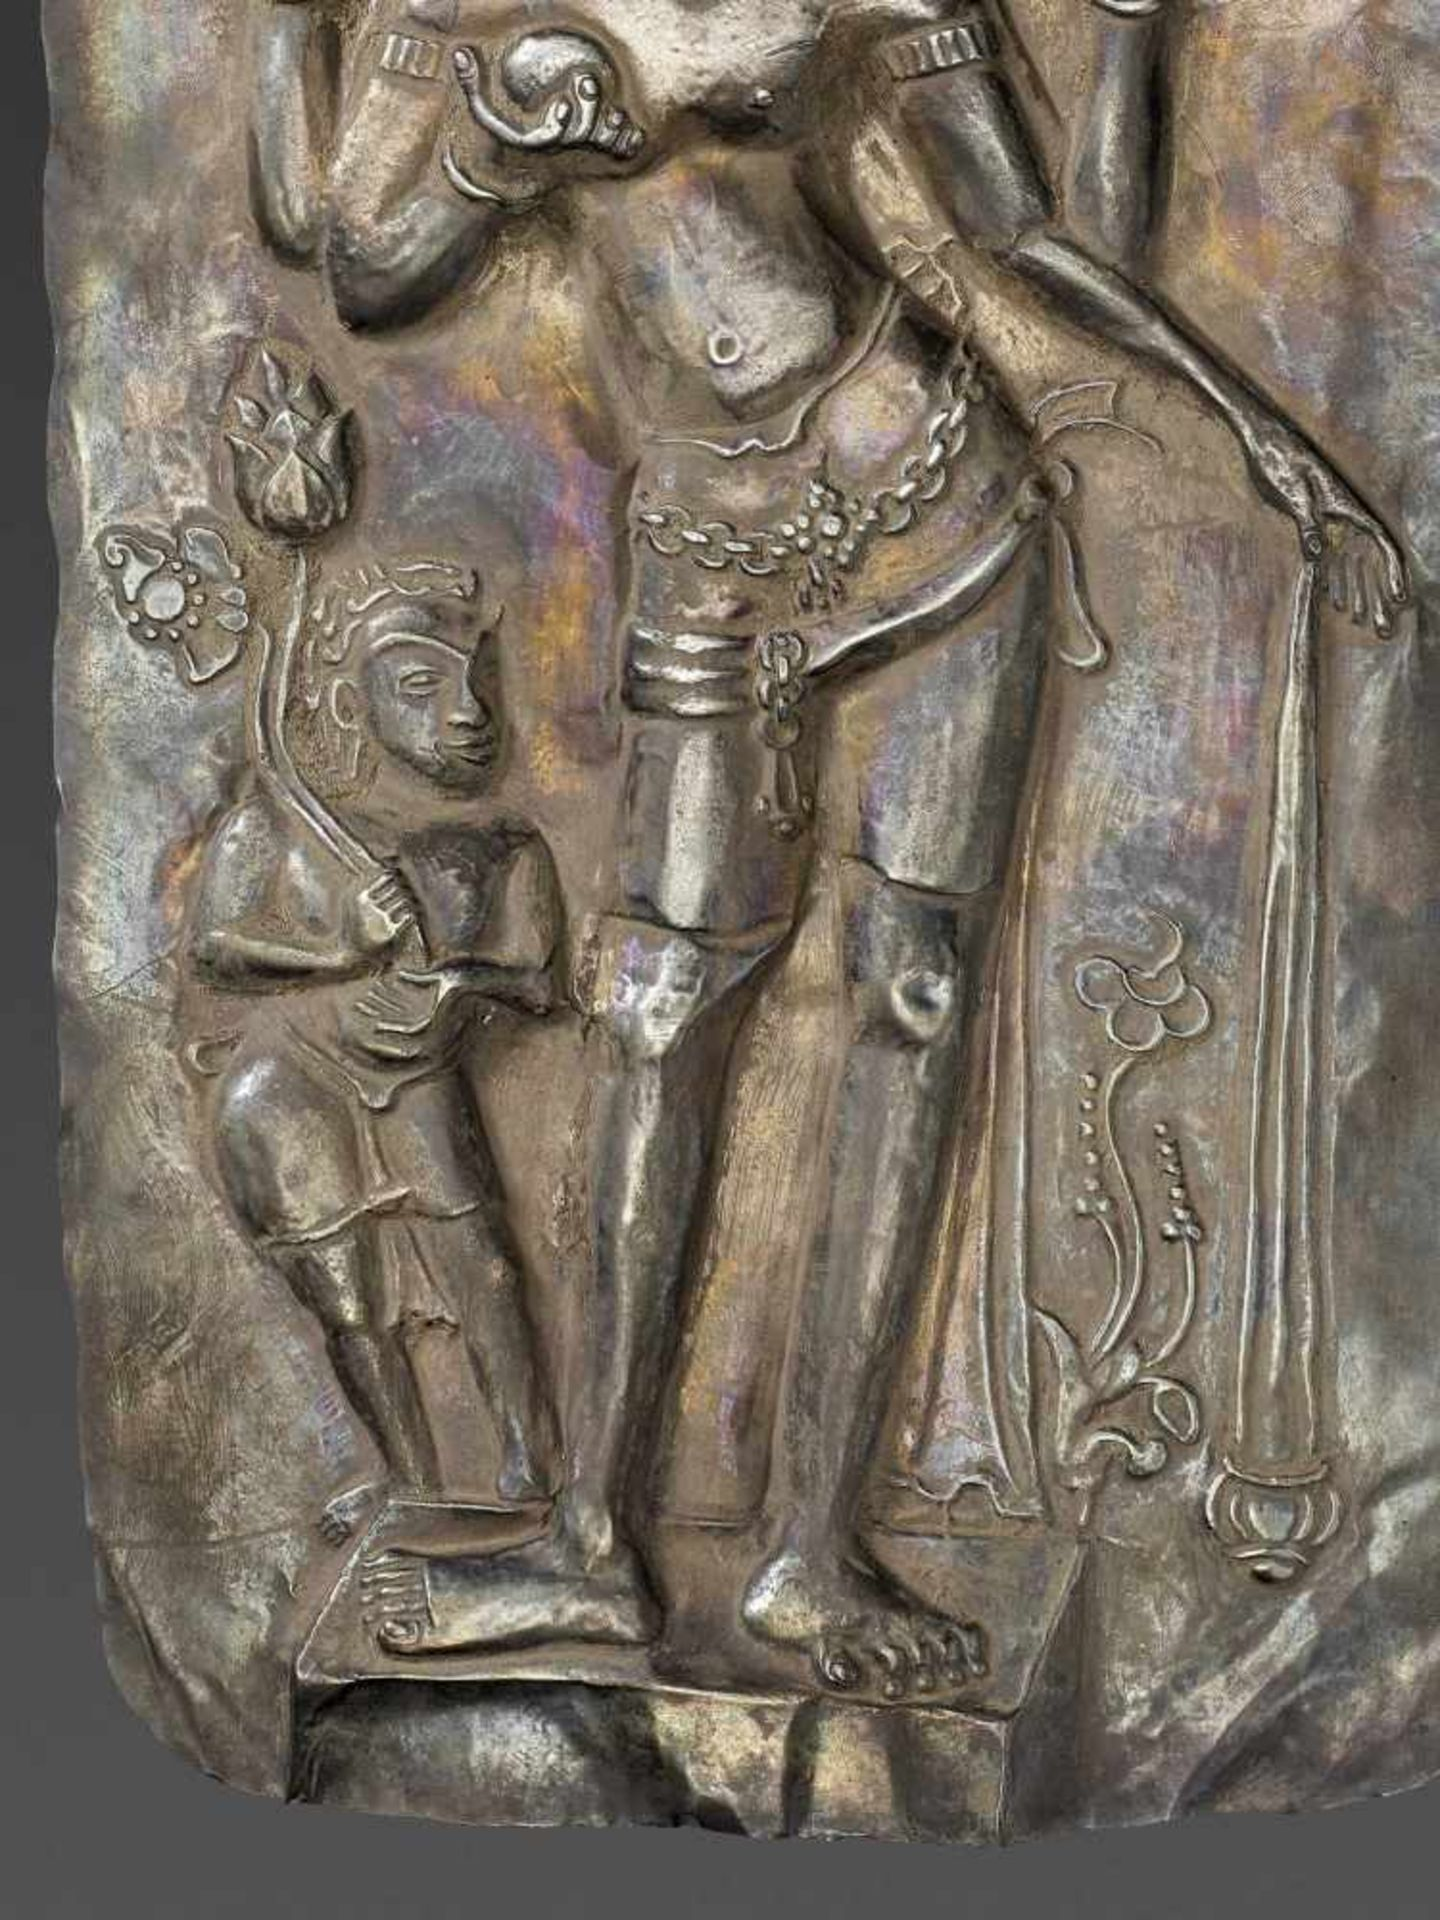 A LARGE CHAM SILVER REPOUSSÉ PLAQUE DEPICTING VISHNU AND CHILD - Bild 4 aus 5